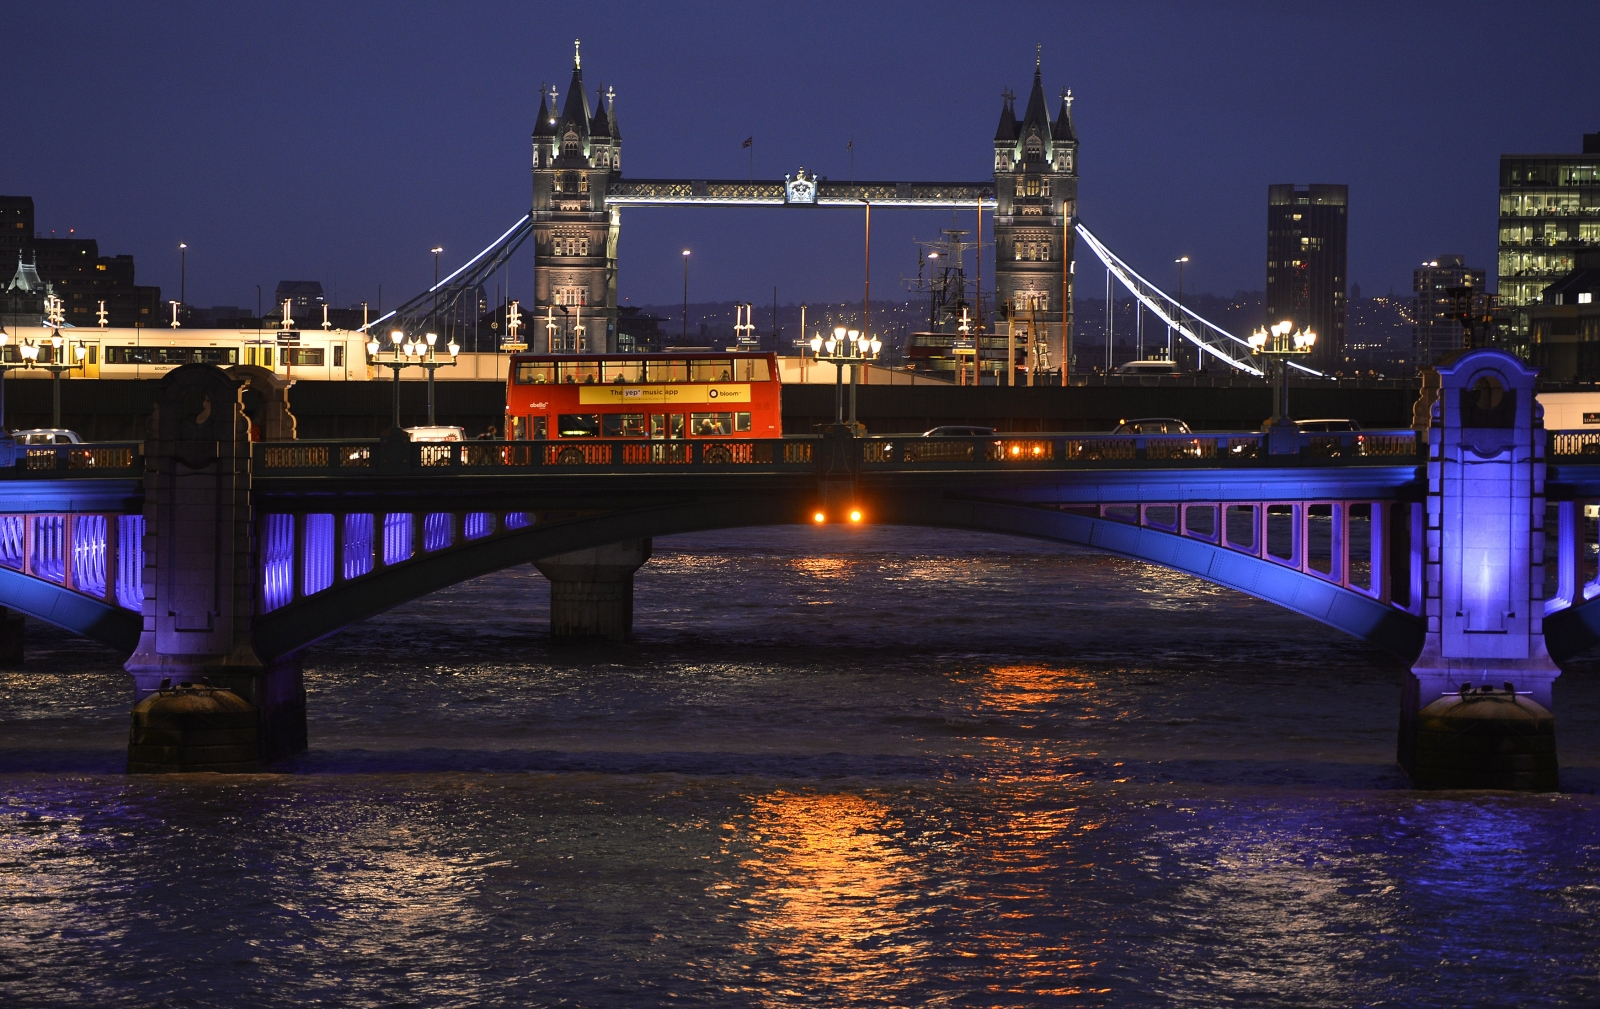 Forbes' 'The World's Most Influential Cities 2014' ranks London top New York and Paris